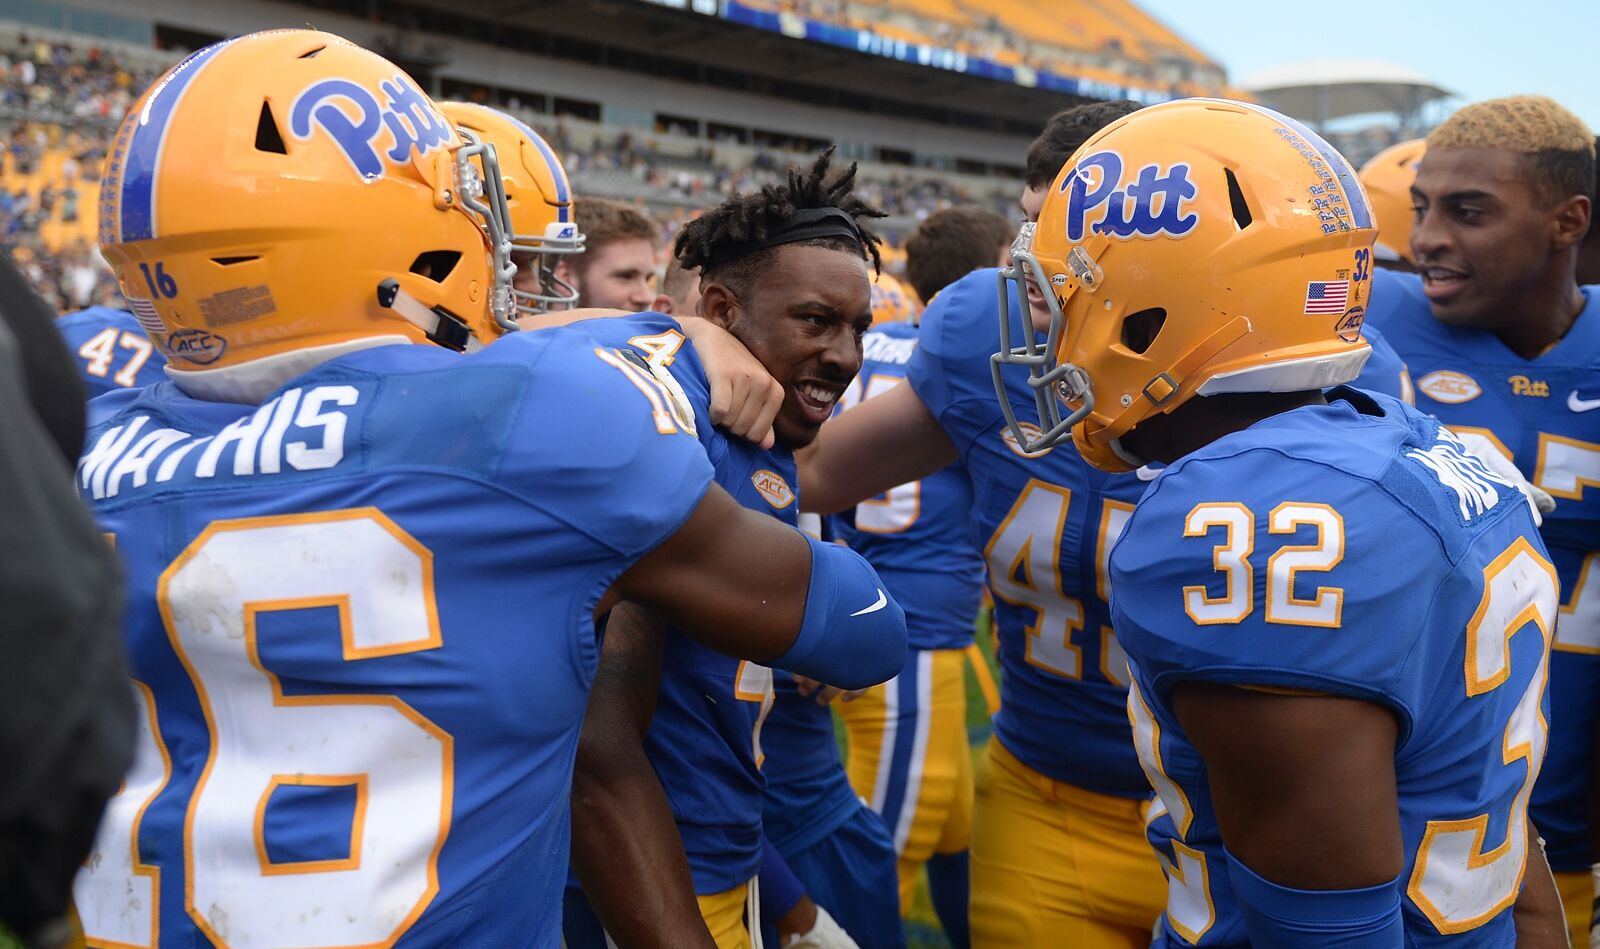 Pitt Football: Can Panthers repeat as ACC Coastal champs in 2019?